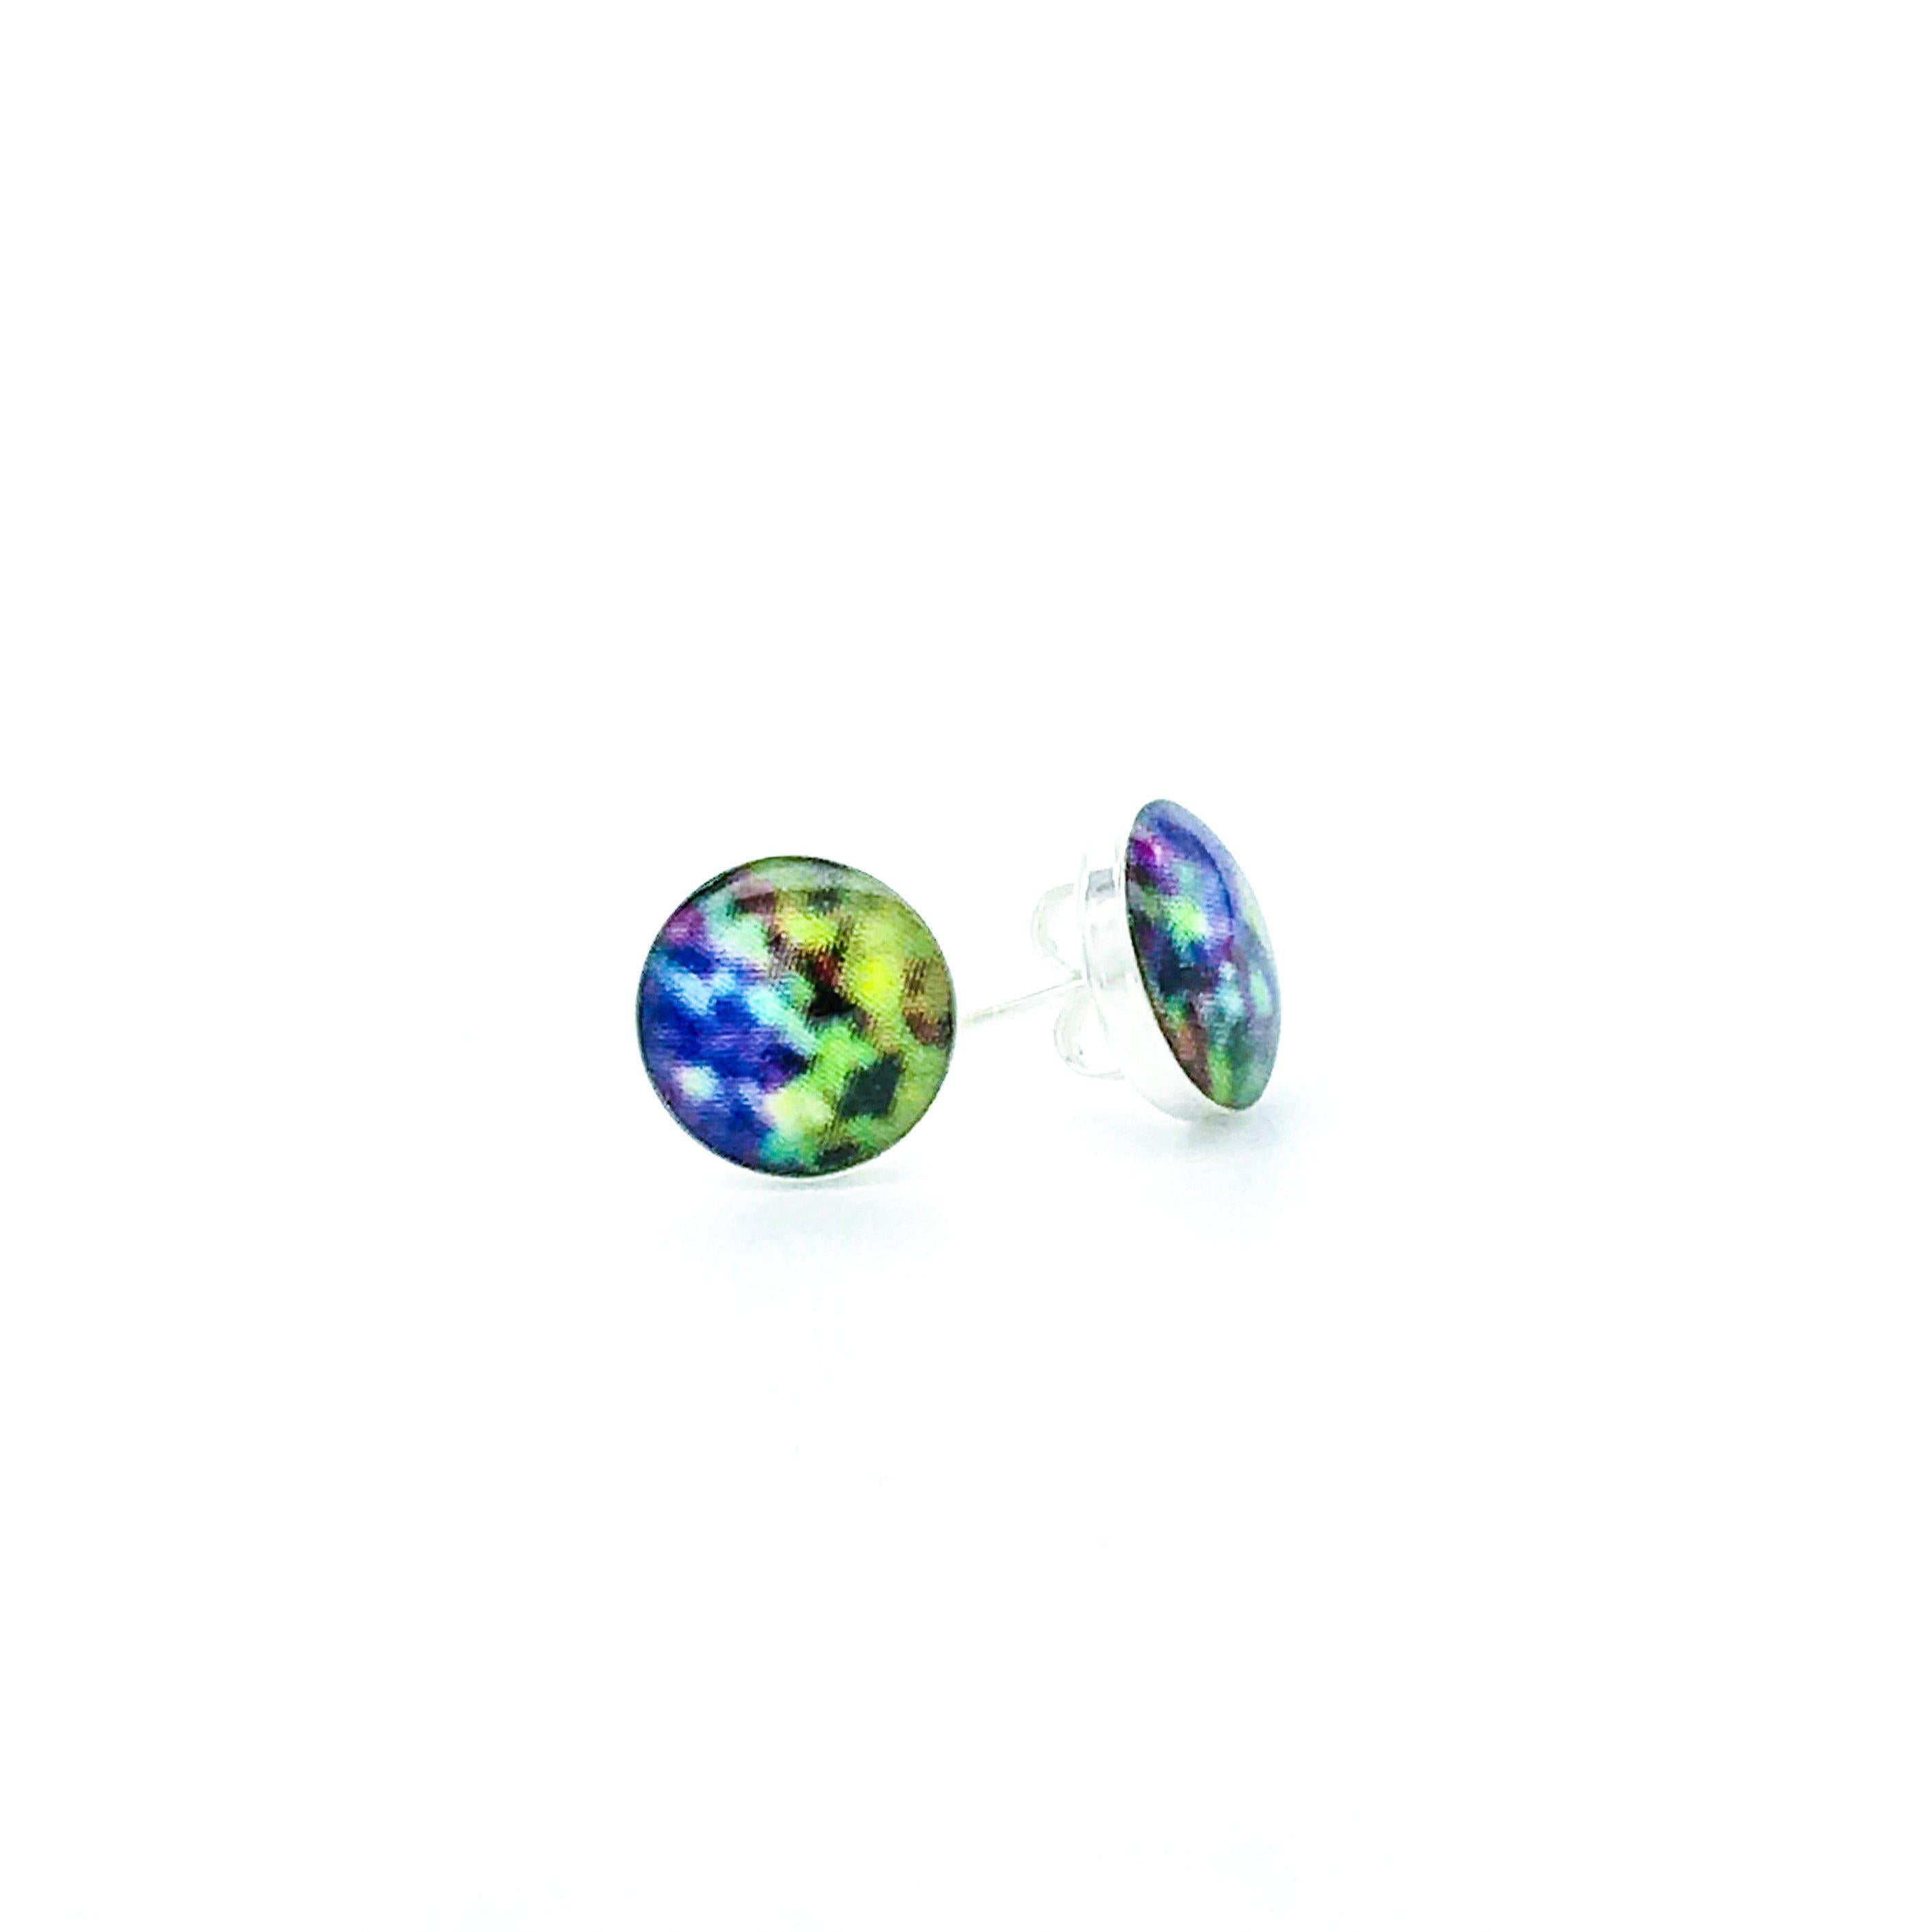 sterling silver studs with blue green and yellow images set in resin post earrings